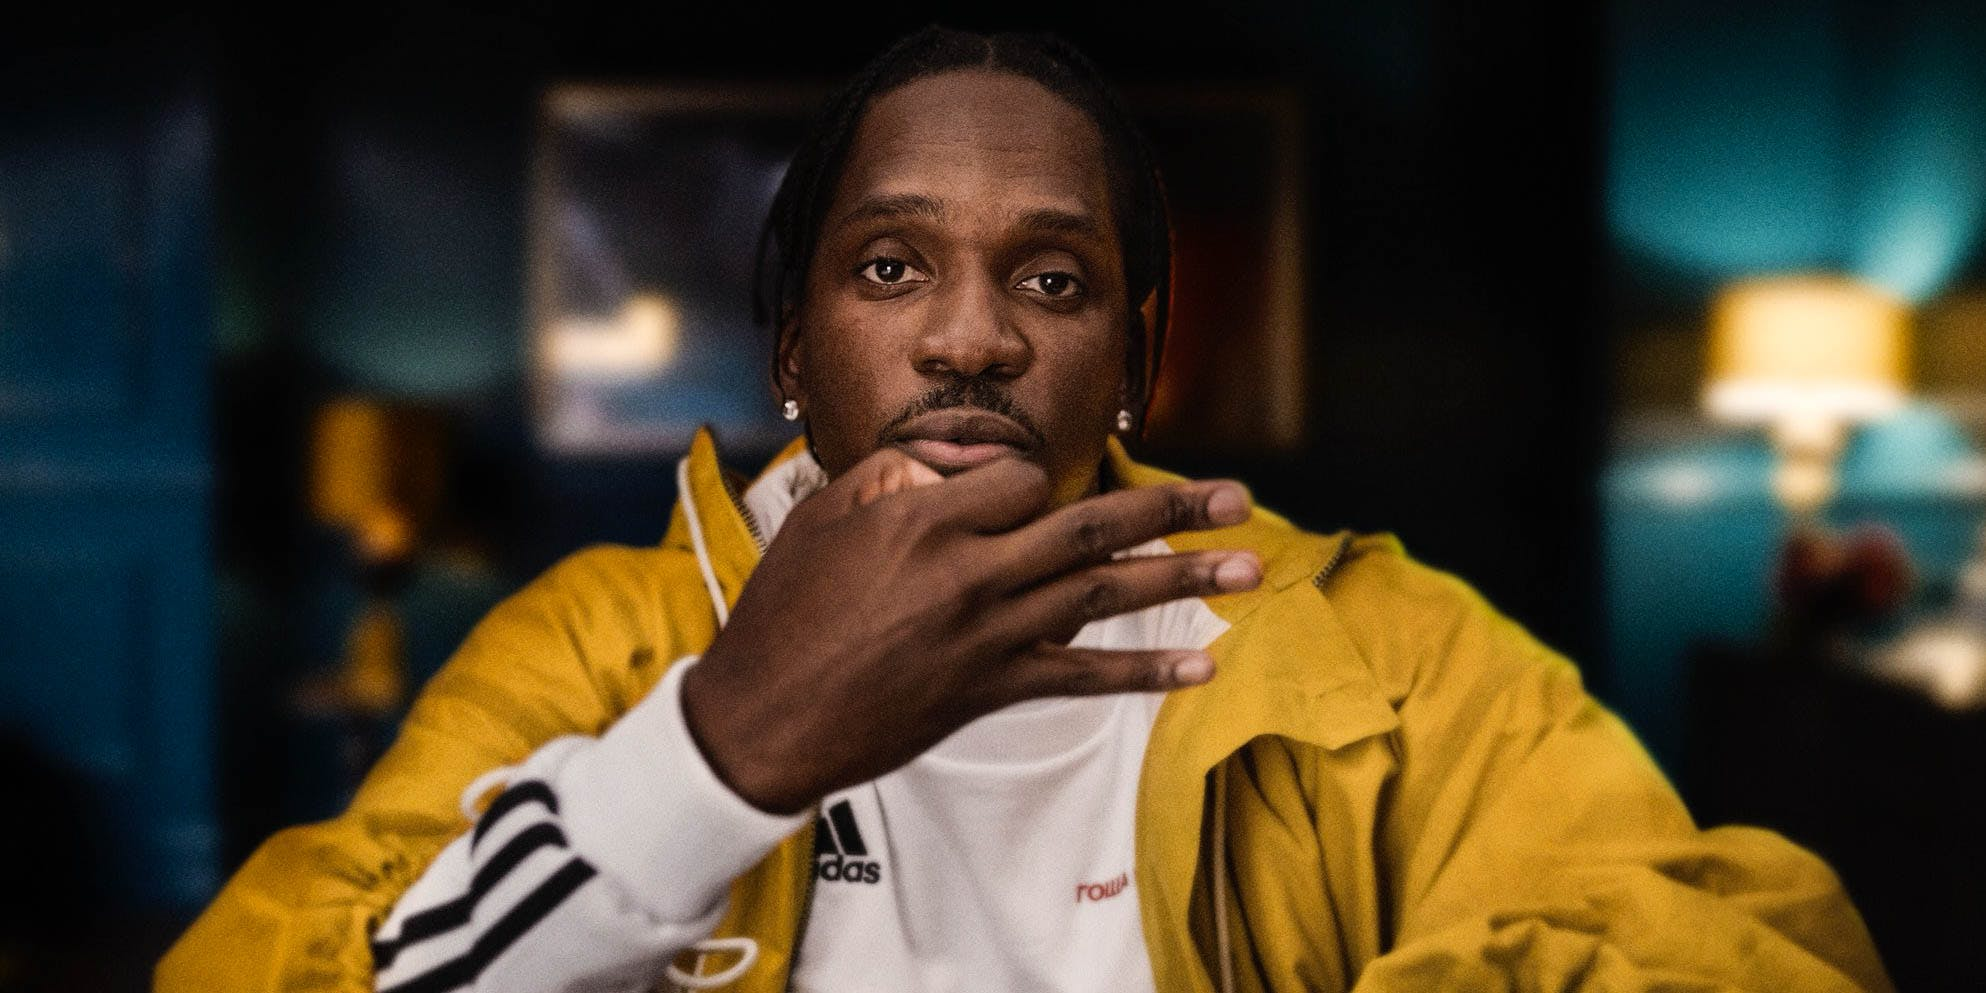 New Pusha T Track Claims Drake Has A Secret Lovechild